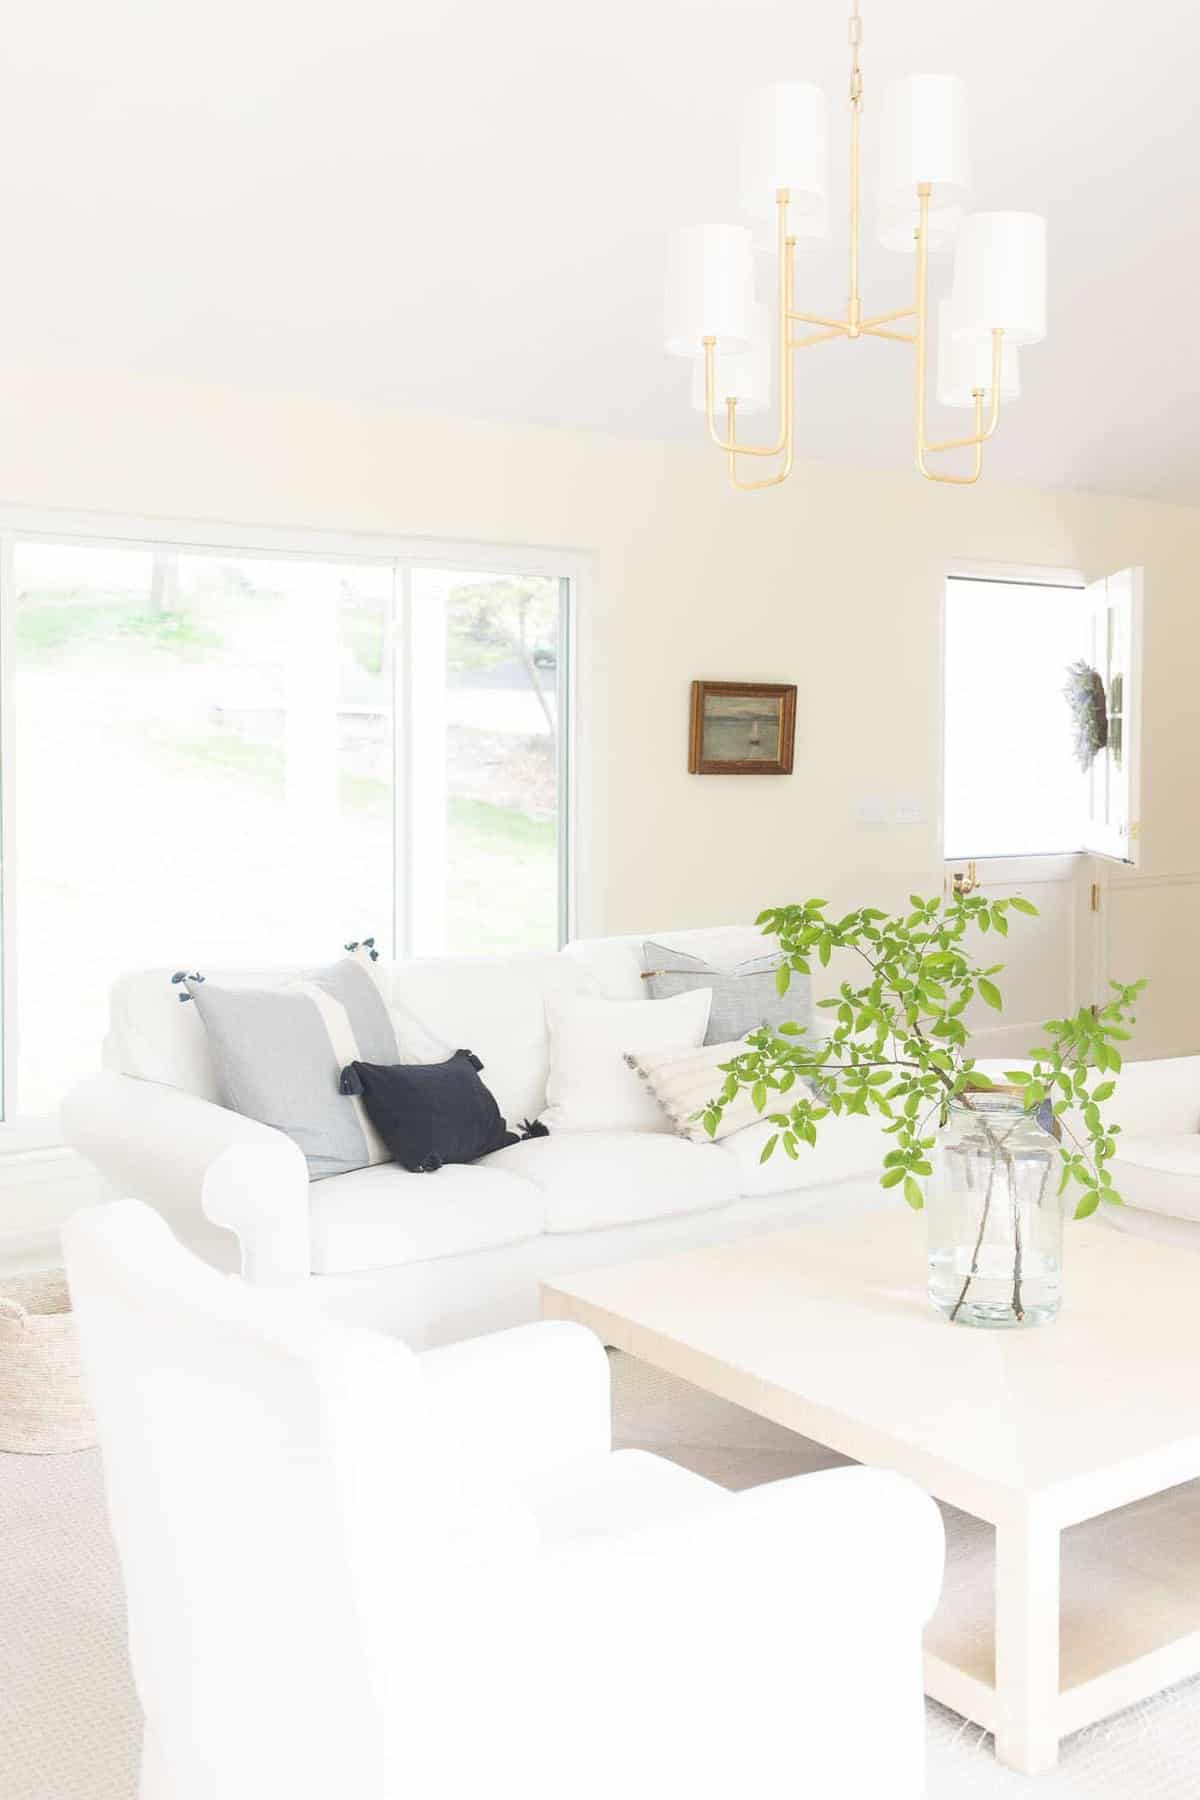 A white living room with a dutch door adding light in the room